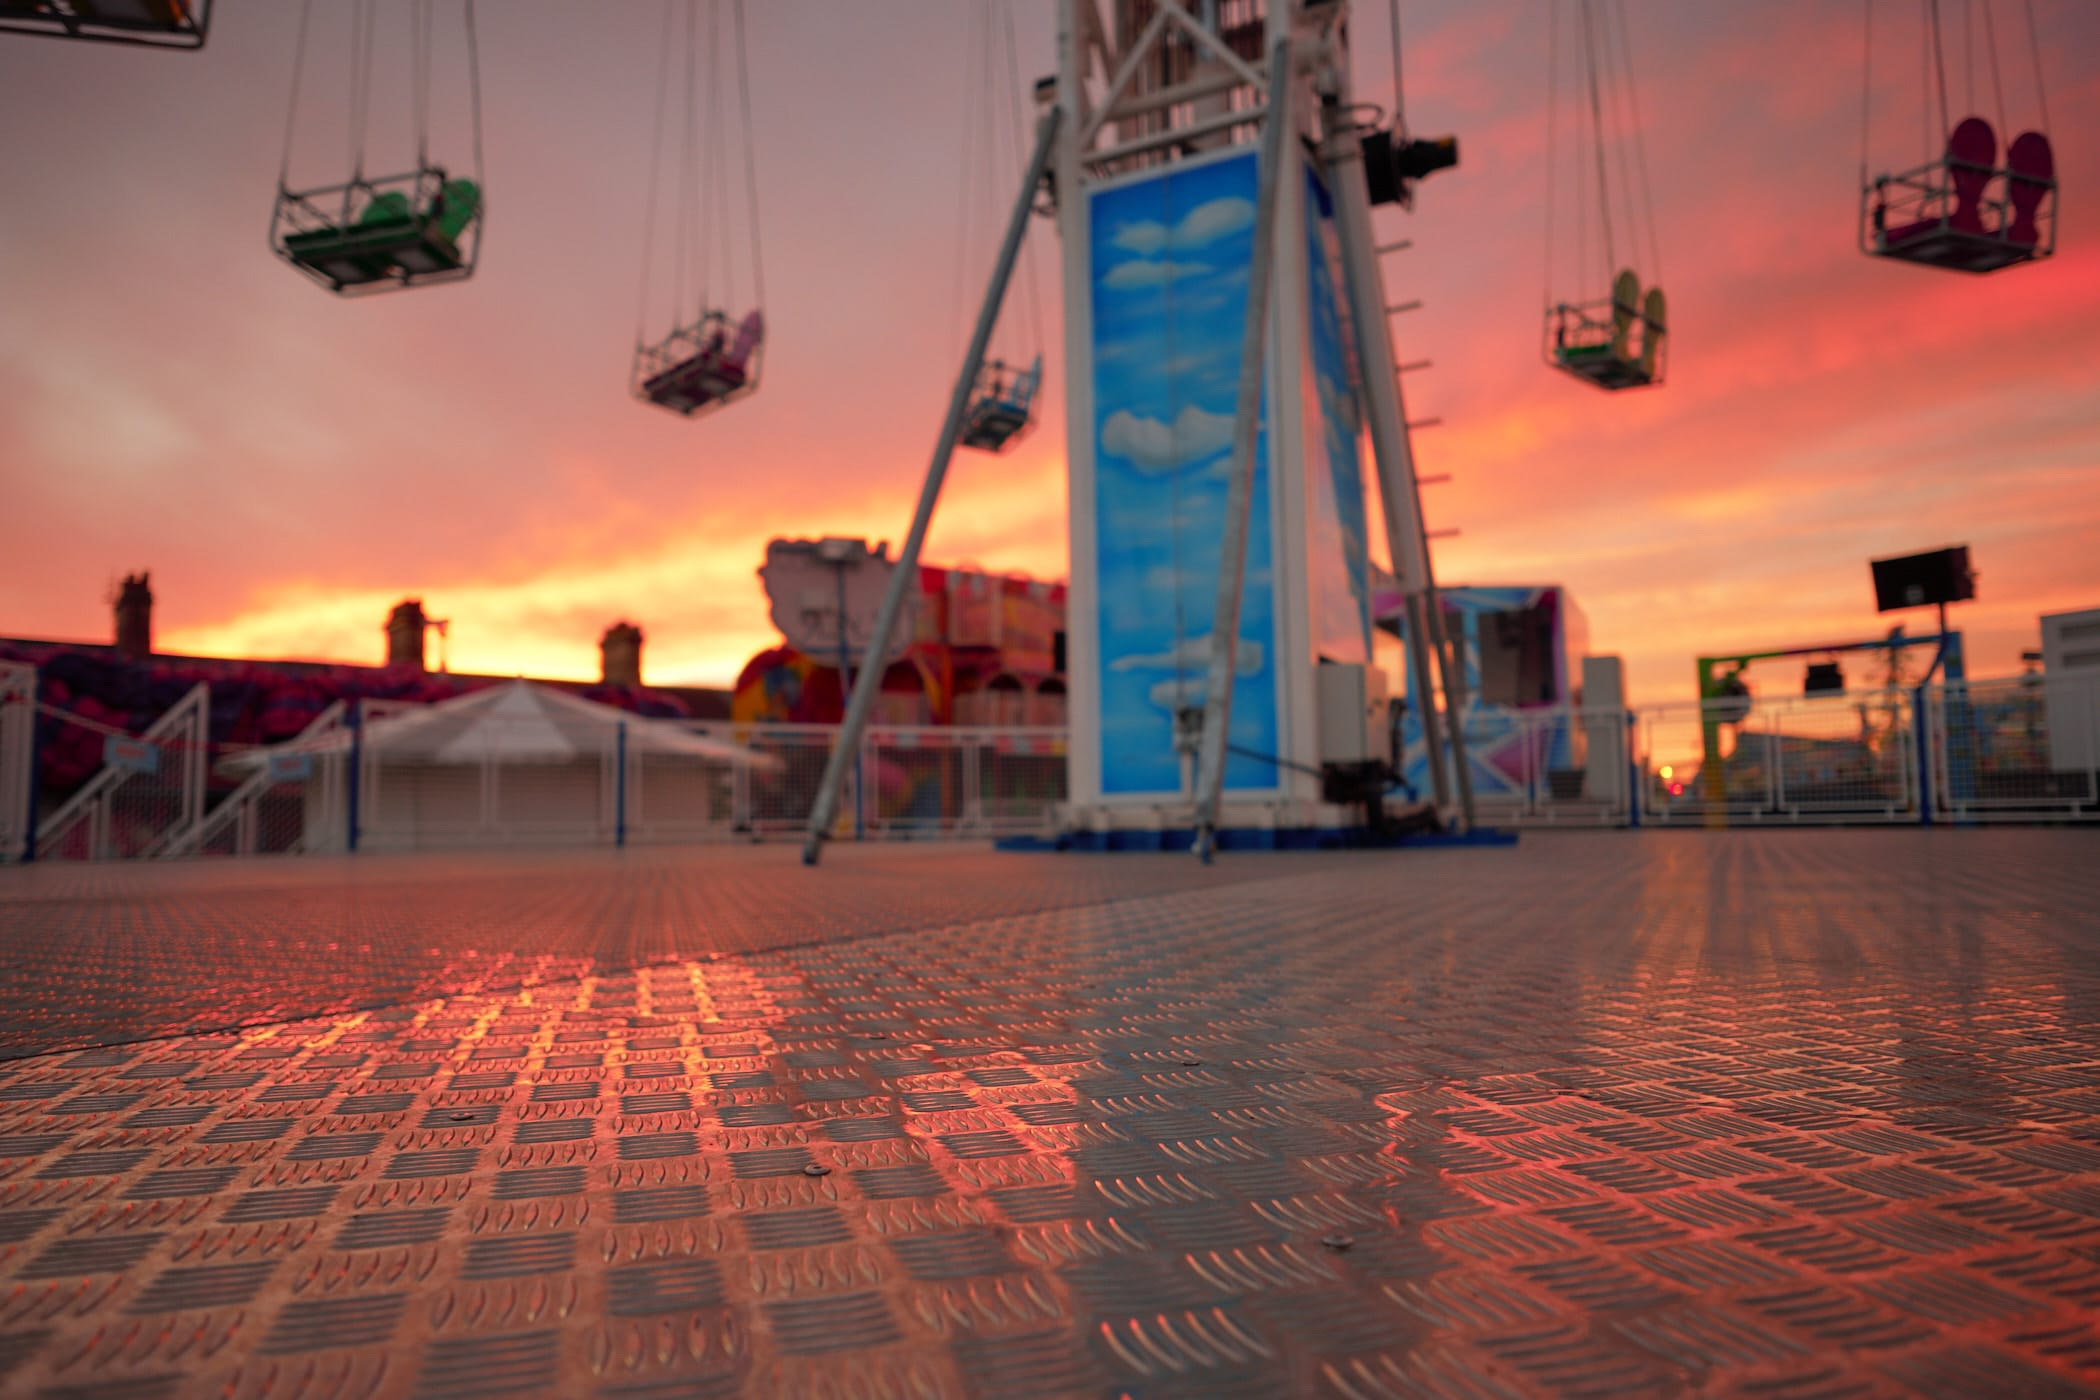 sunset sky reflected on ride floor